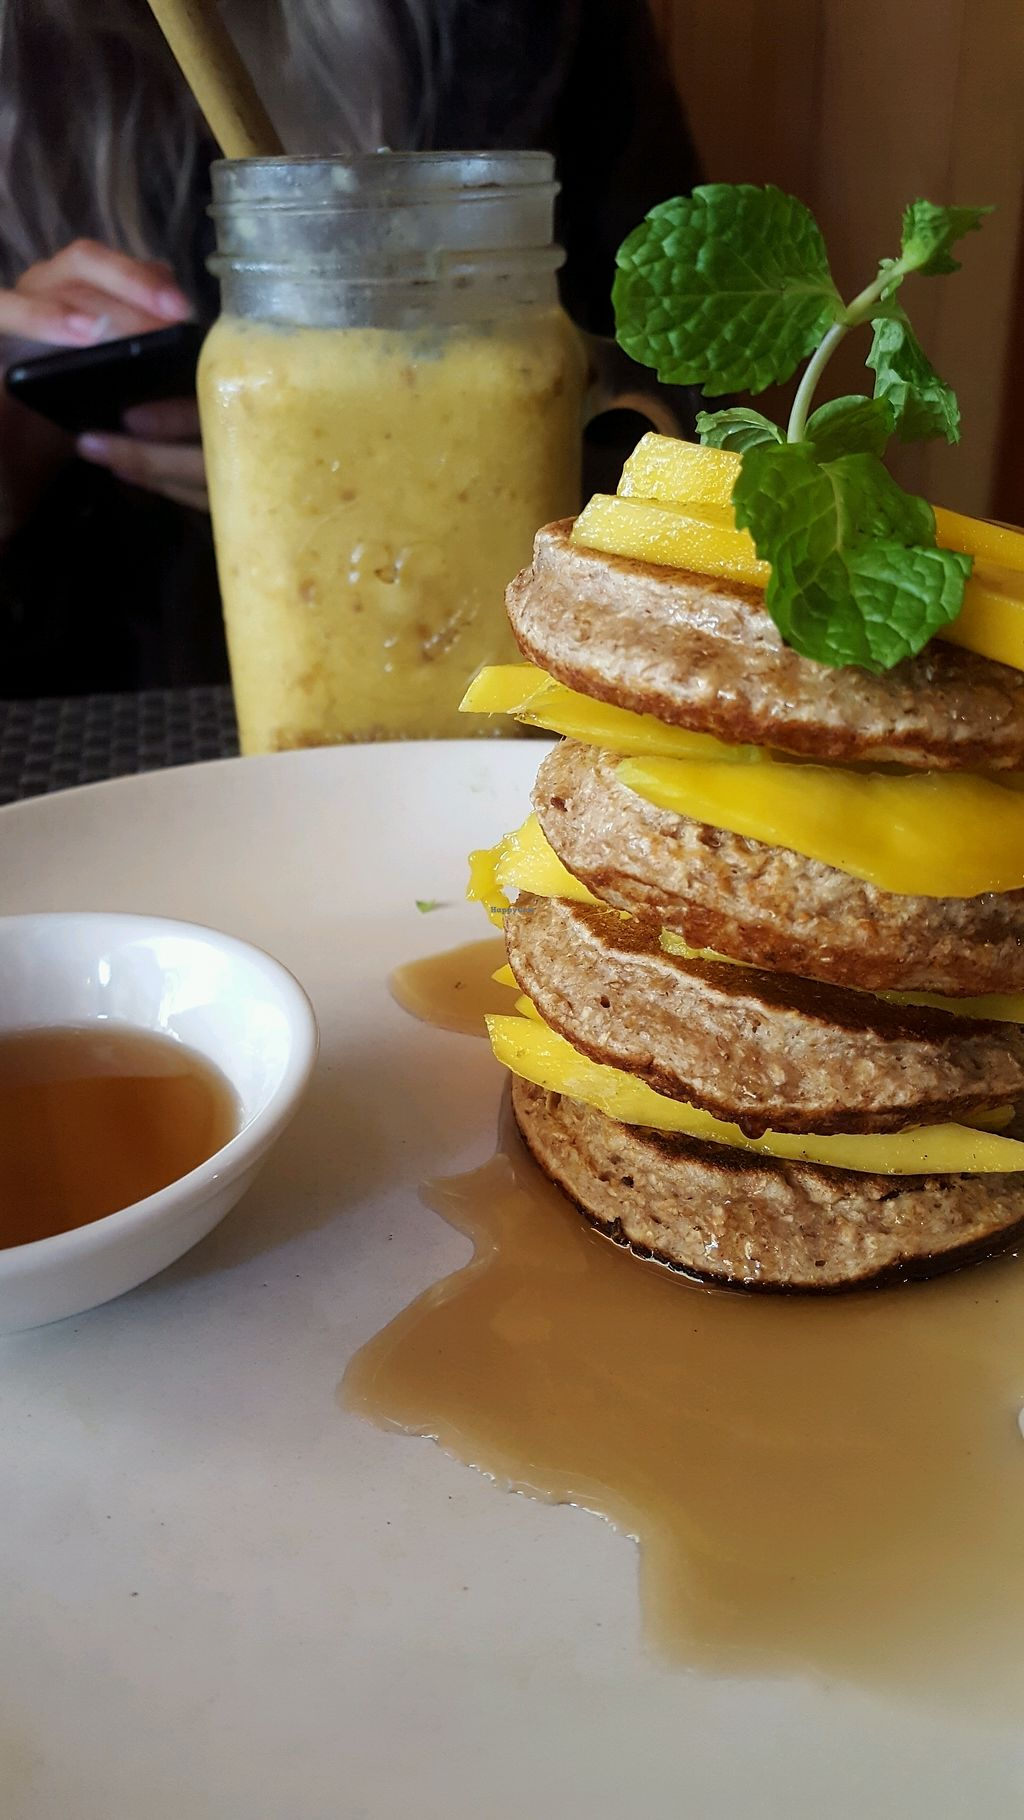 "Photo of La Studio  by <a href=""/members/profile/nina.tica"">nina.tica</a> <br/>amazing mango pancakes with pineapple jam.  <br/> December 12, 2017  - <a href='/contact/abuse/image/72278/334868'>Report</a>"